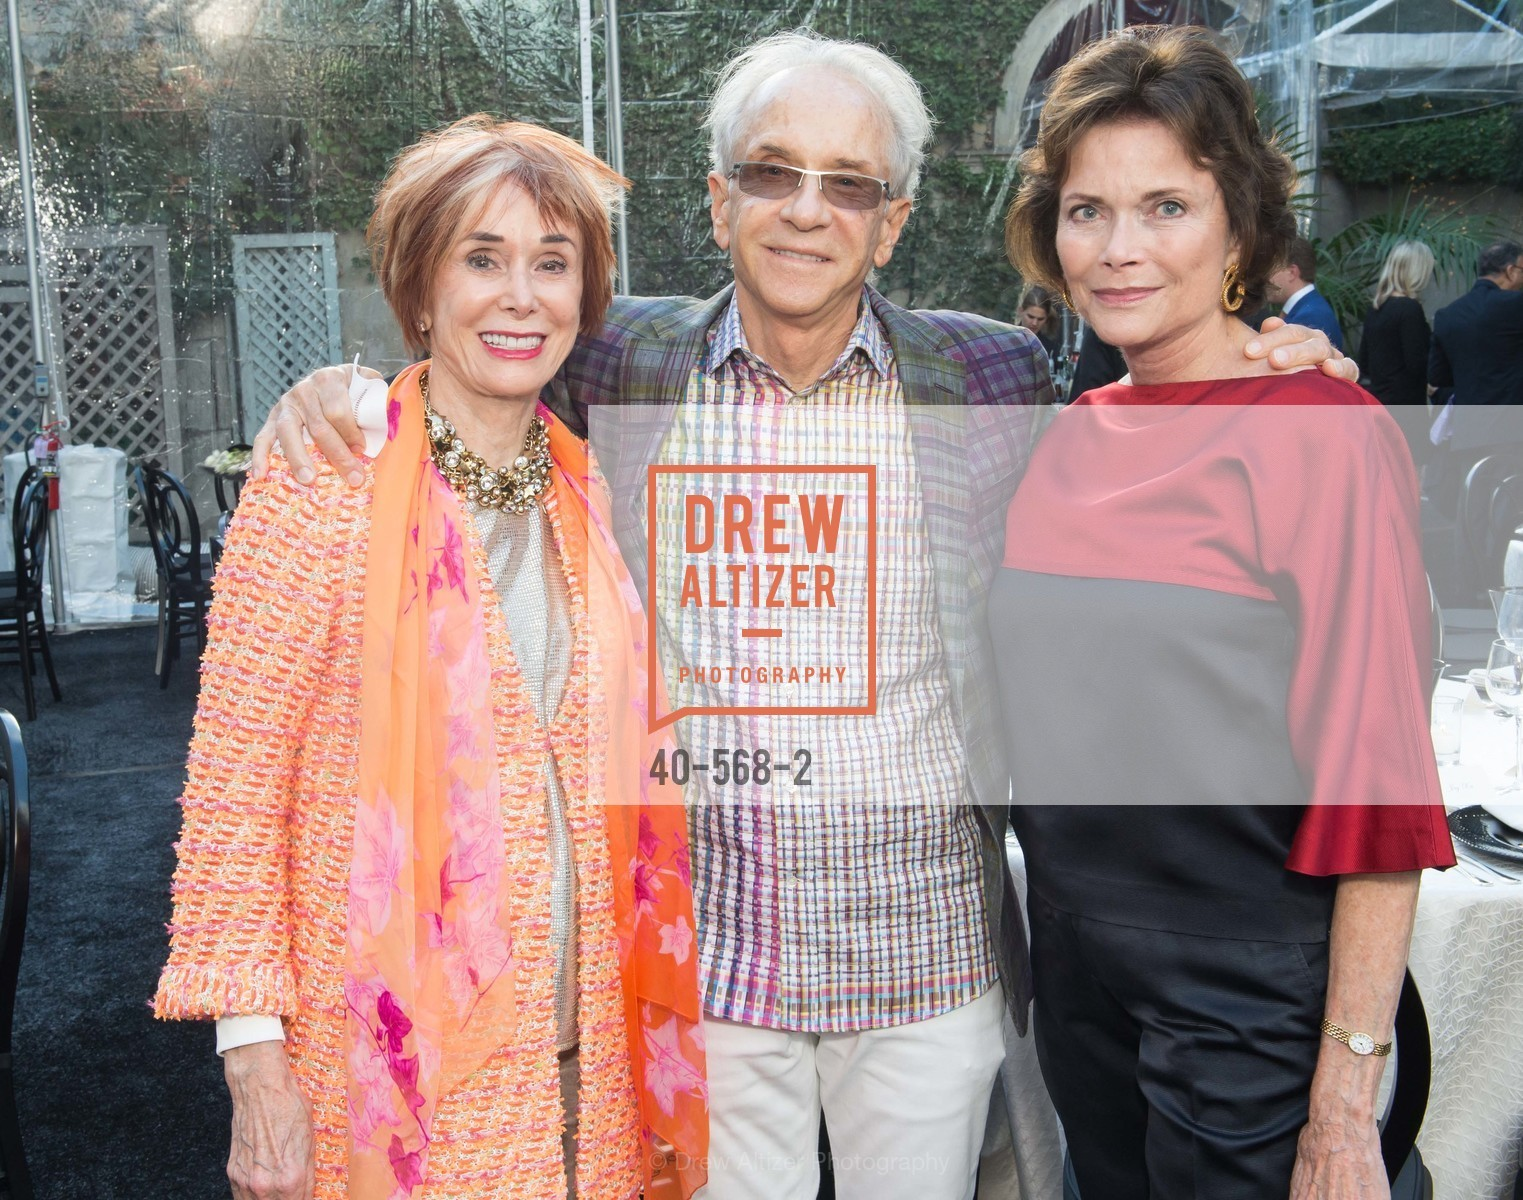 Norah Stone, Norman Stone, Kay Walker, SOTHEBY'S  Hosts a Private Viewing of Highlights from the Collection of MRS. PAUL MELLON, US, September 17th, 2014,Drew Altizer, Drew Altizer Photography, full-service agency, private events, San Francisco photographer, photographer california